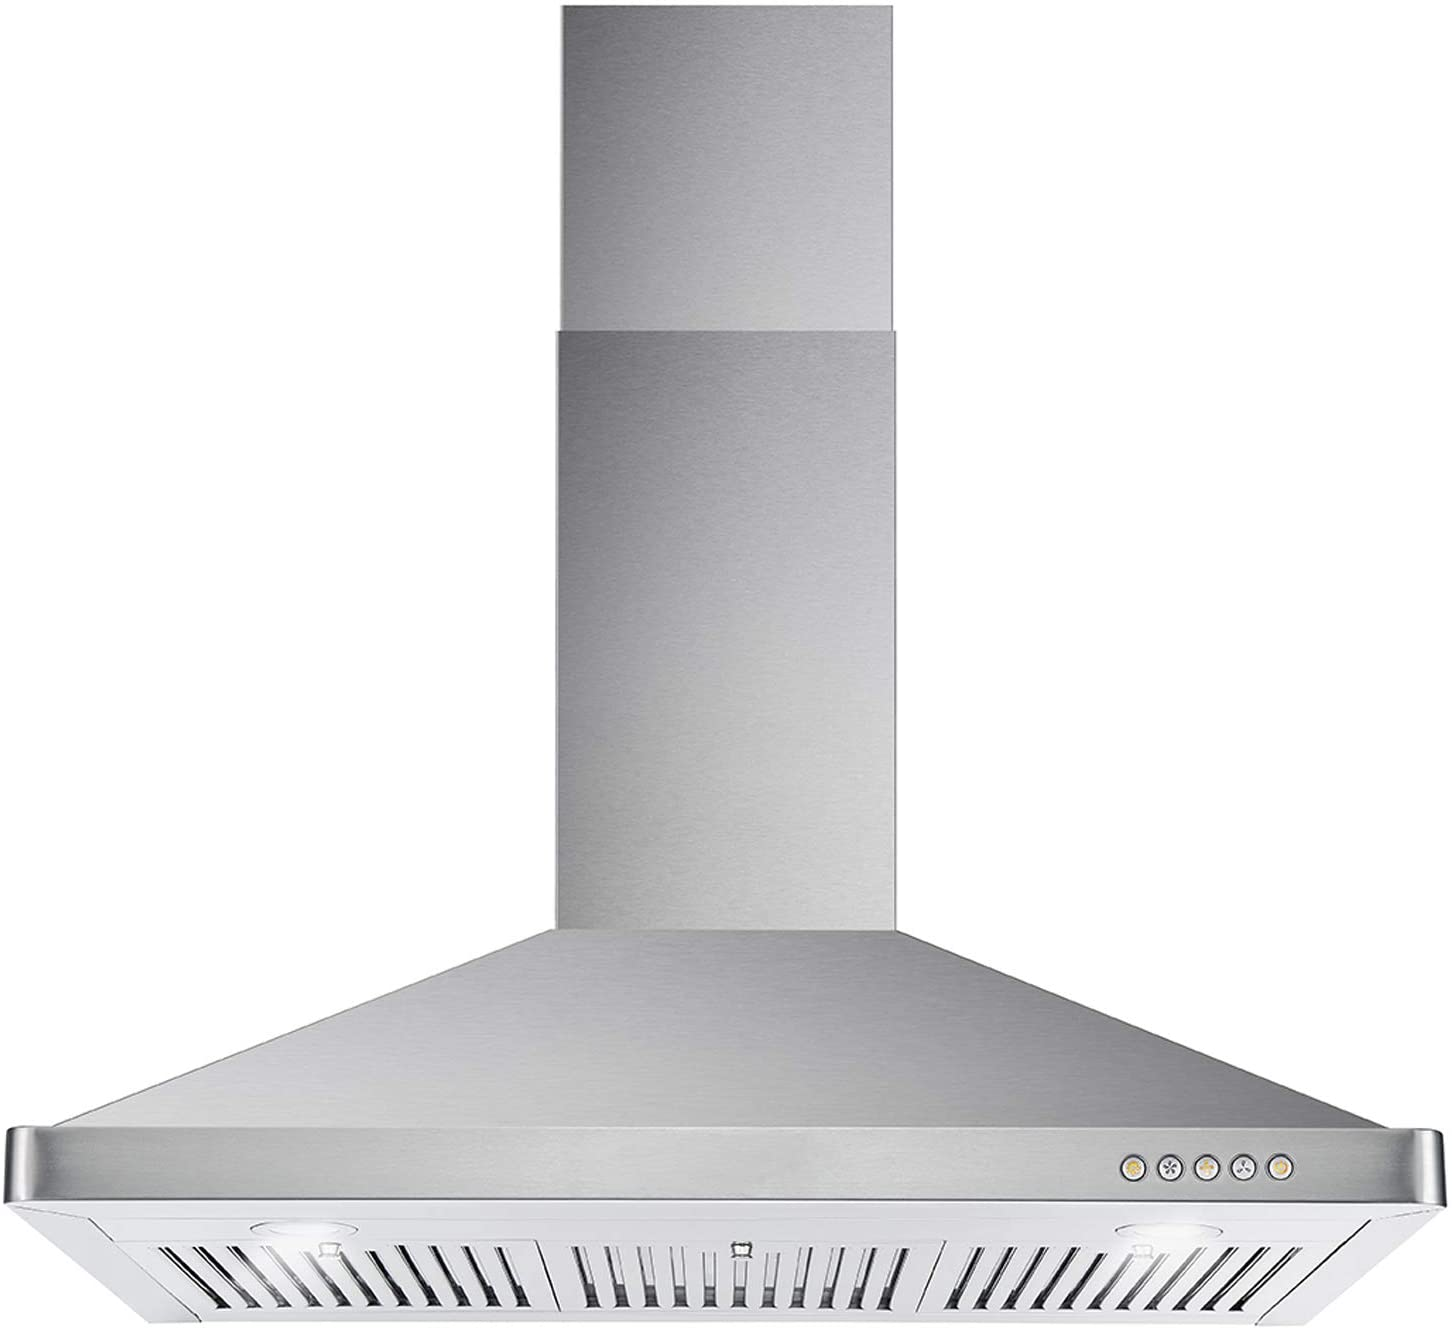 Cosmo 63190 36-in Wall-Mount Range Hood 760-CFM Ductless Convertible Duct